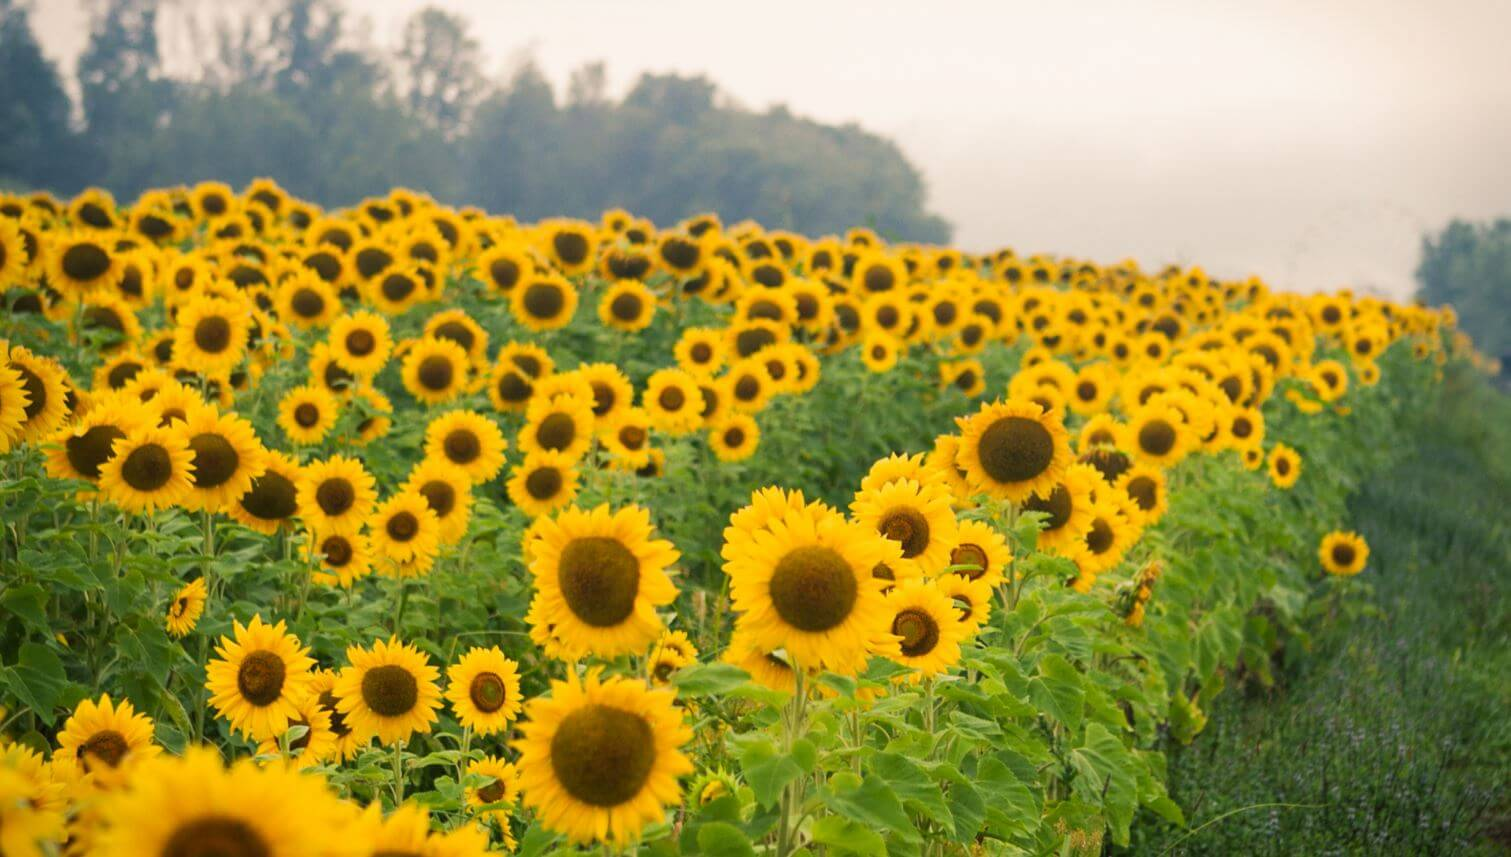 Sunflowers Are Located At The Grounds Of Double G RV Park Please Visit Our Contact Page For Directions